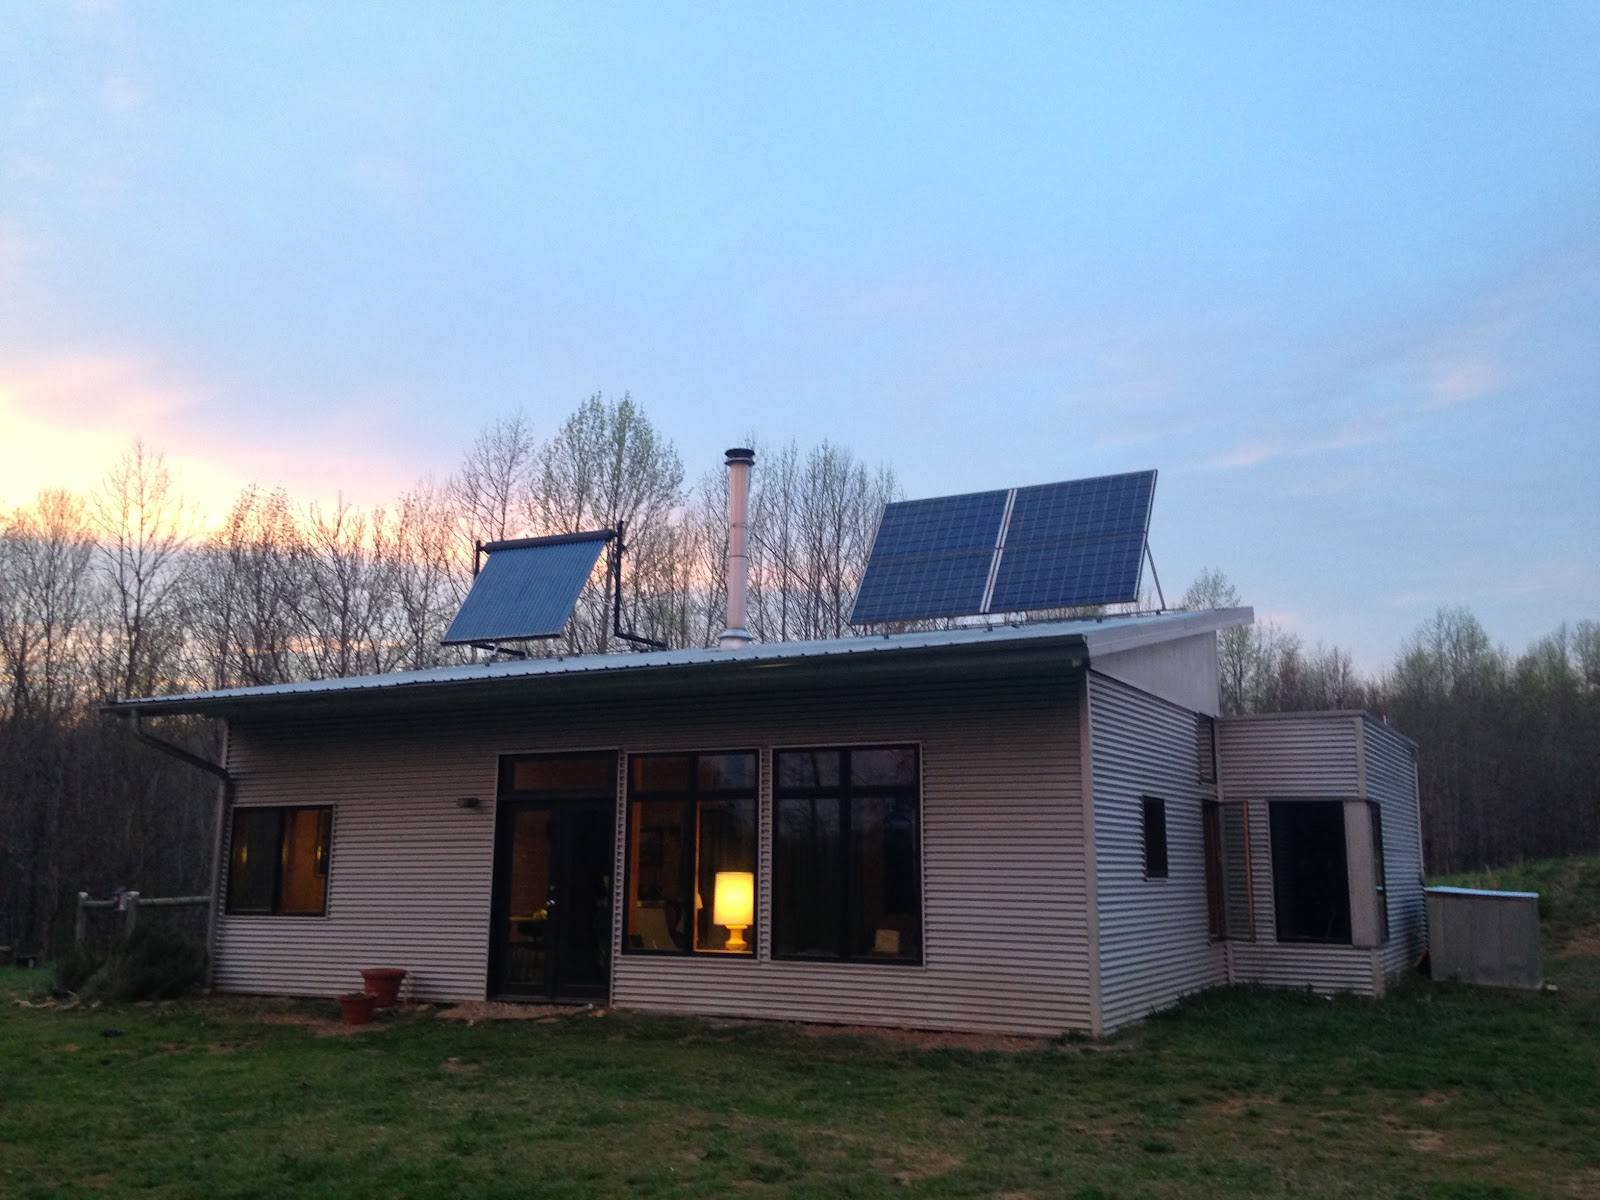 Off Grid Modern Prefab House Breaks The Internet, AGAIN.